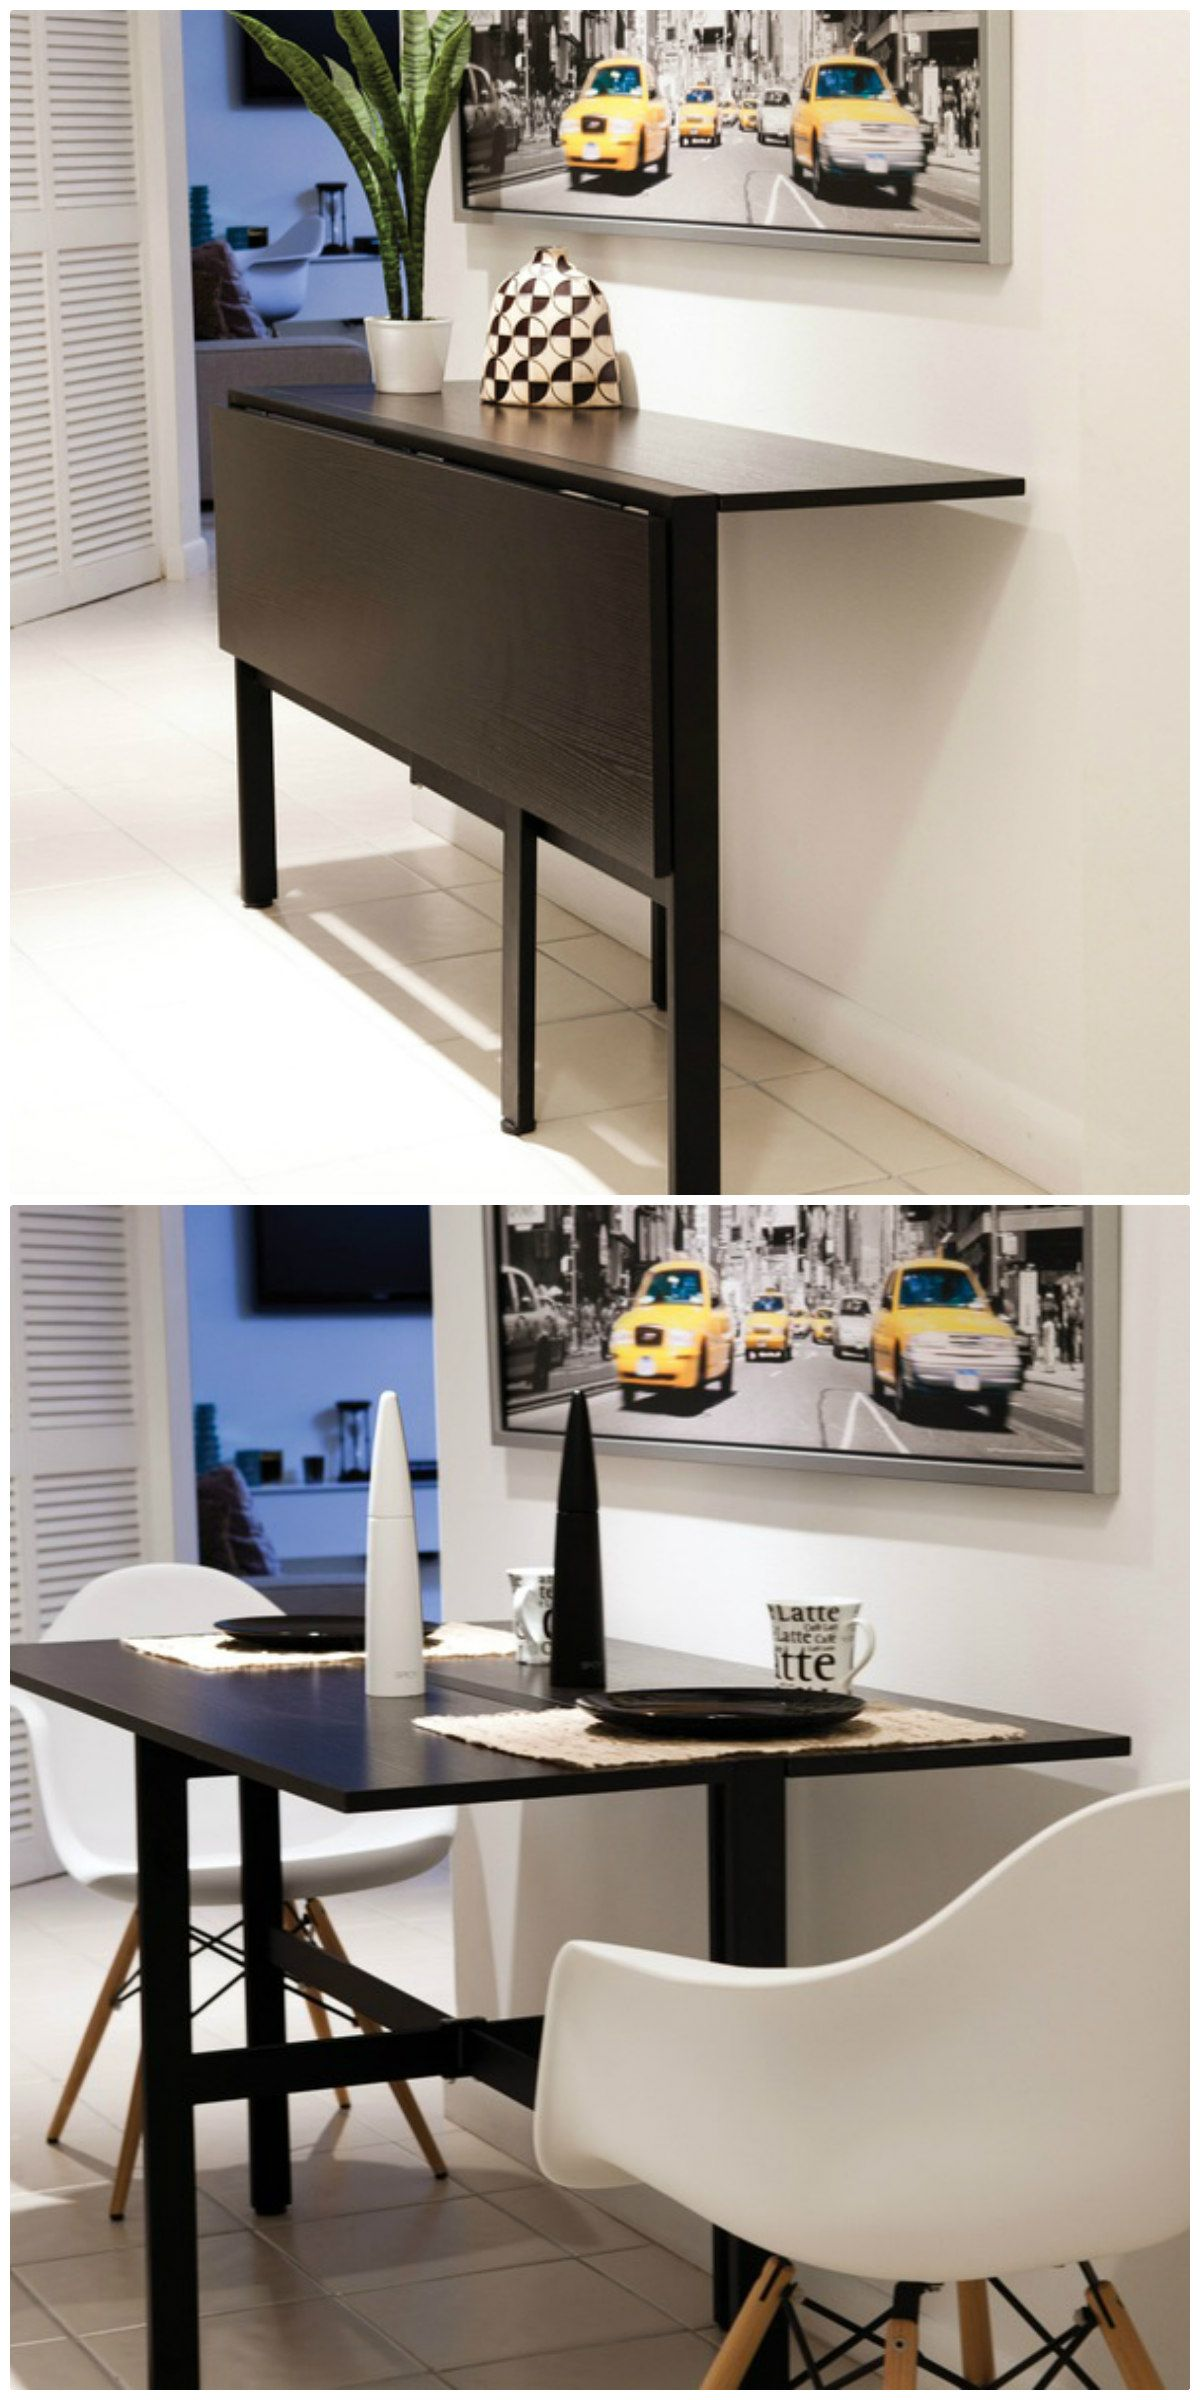 Twenty Dining Tables That Work Great In Small Spaces Living In A Shoebox Small Space Dining Set Dining Table Small Space Dining Room Small